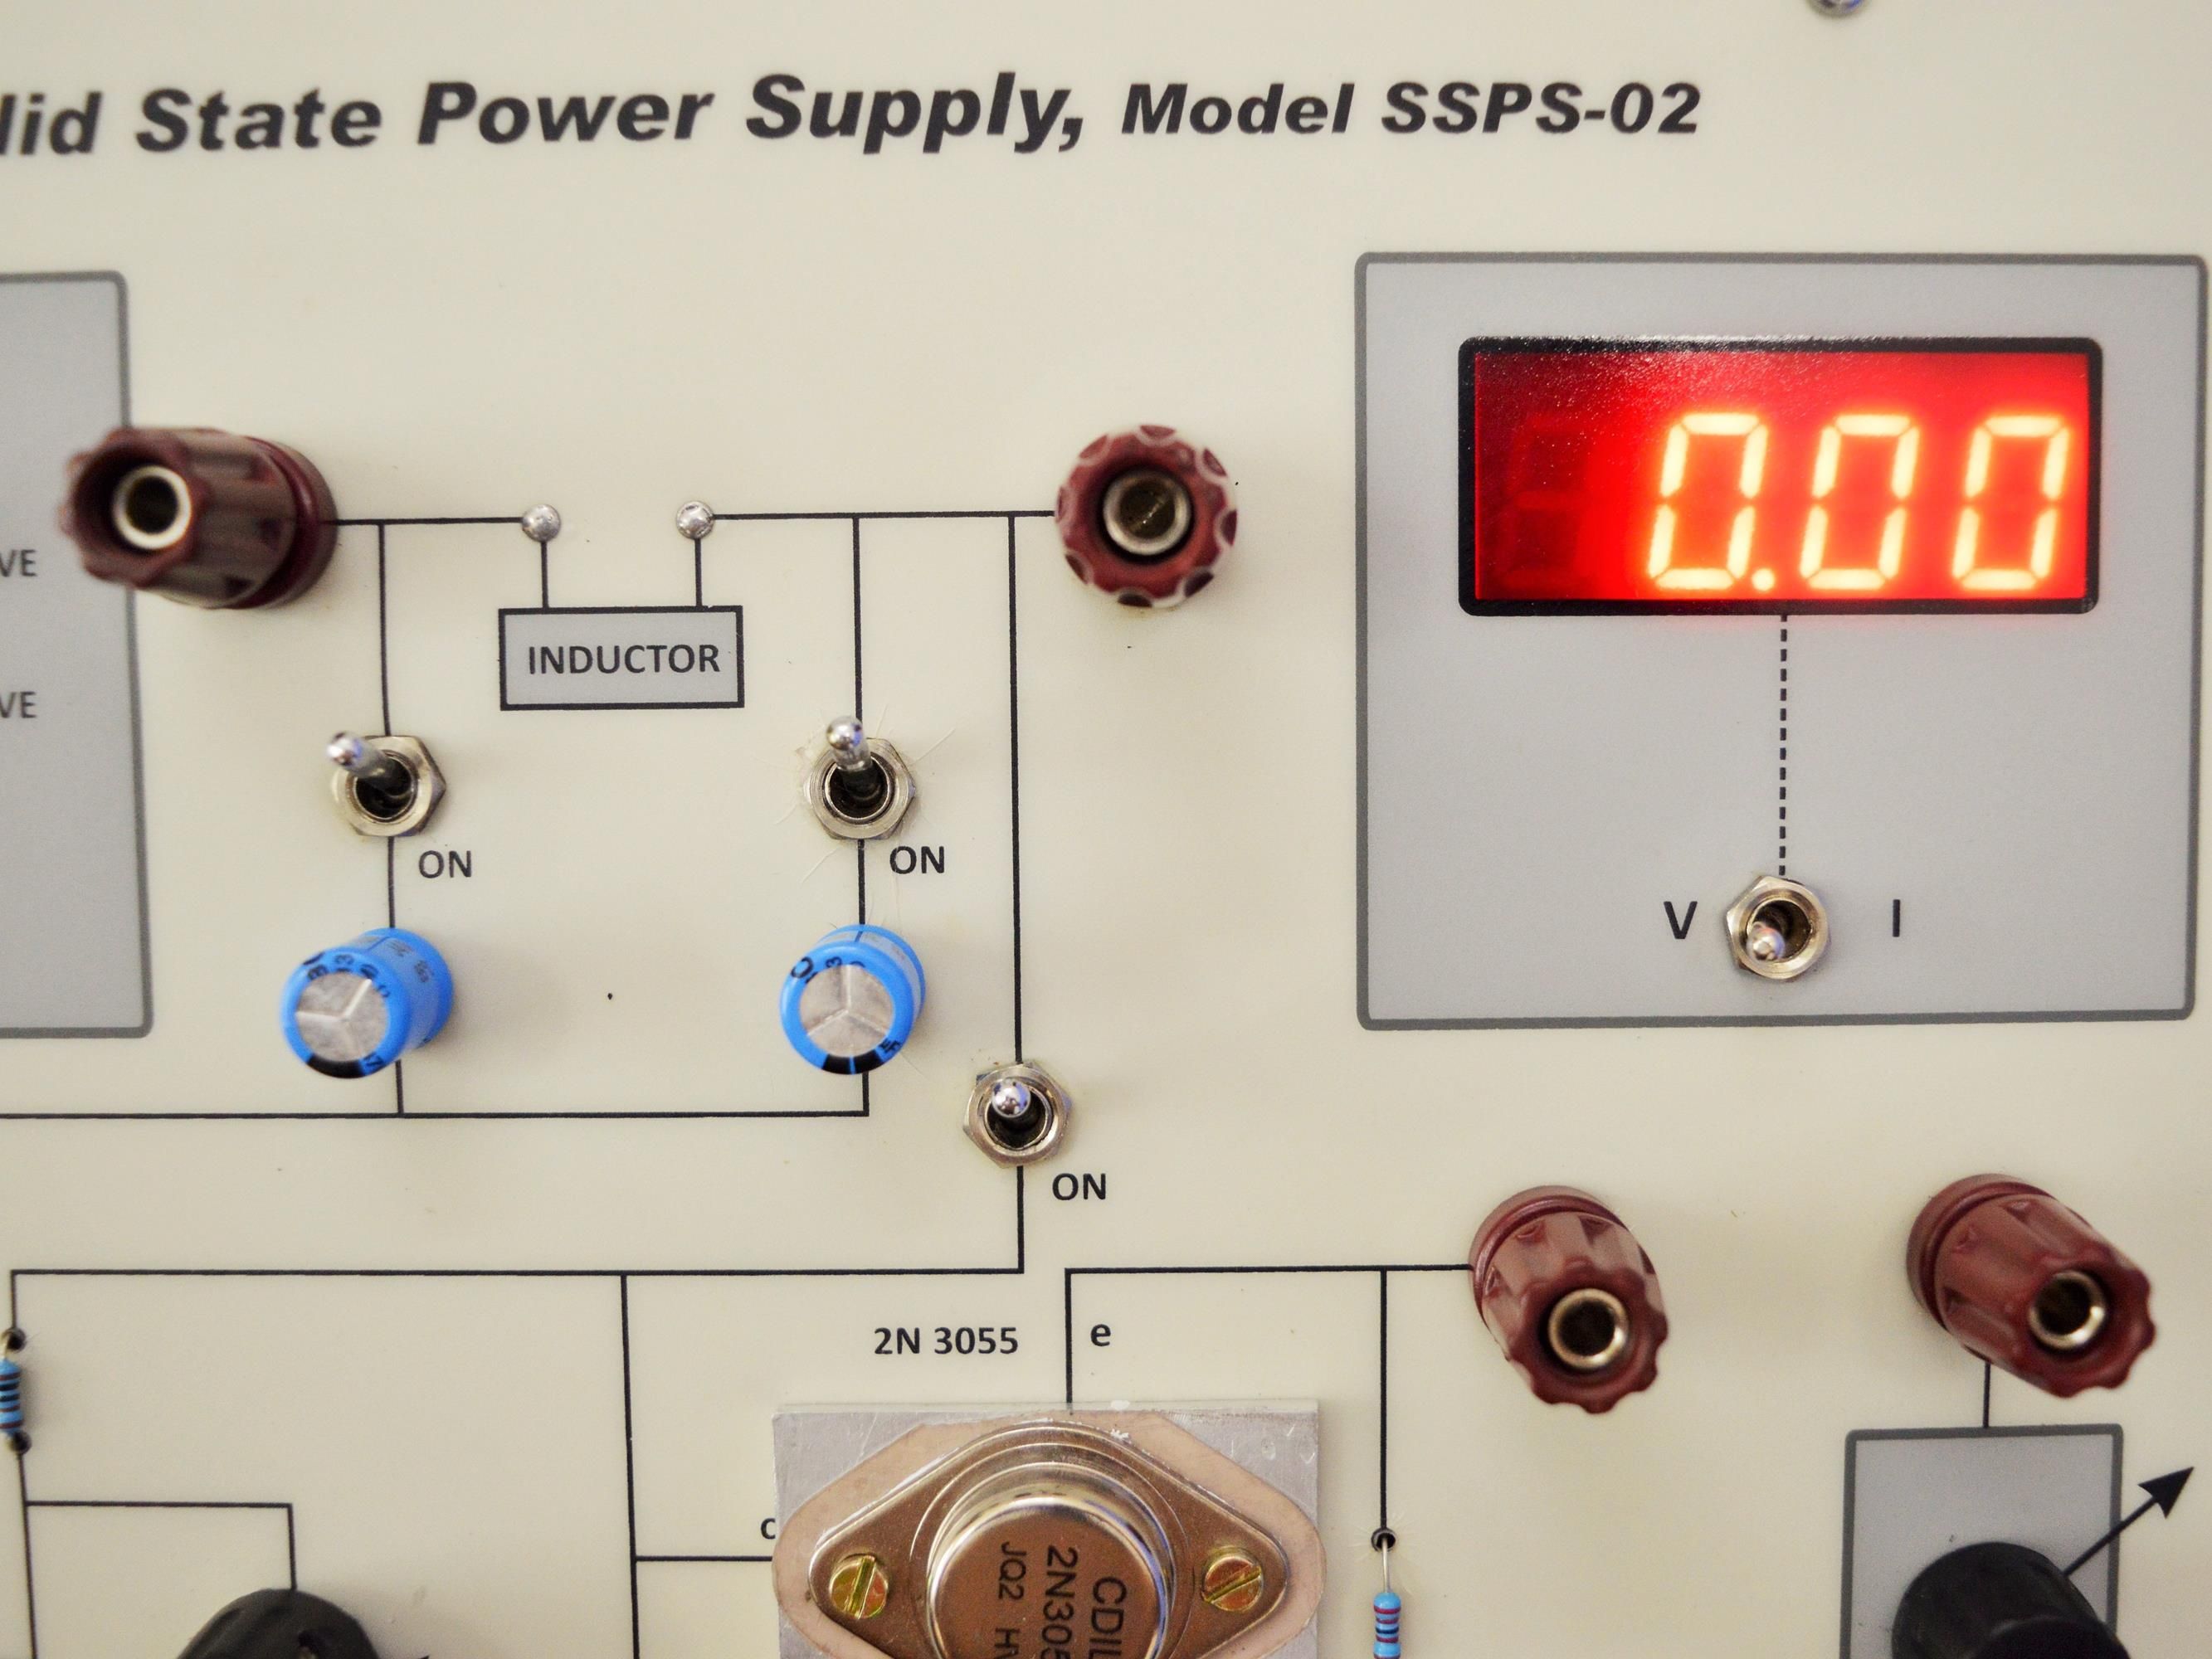 Study of a Solid State Power Supply, SSPS-02